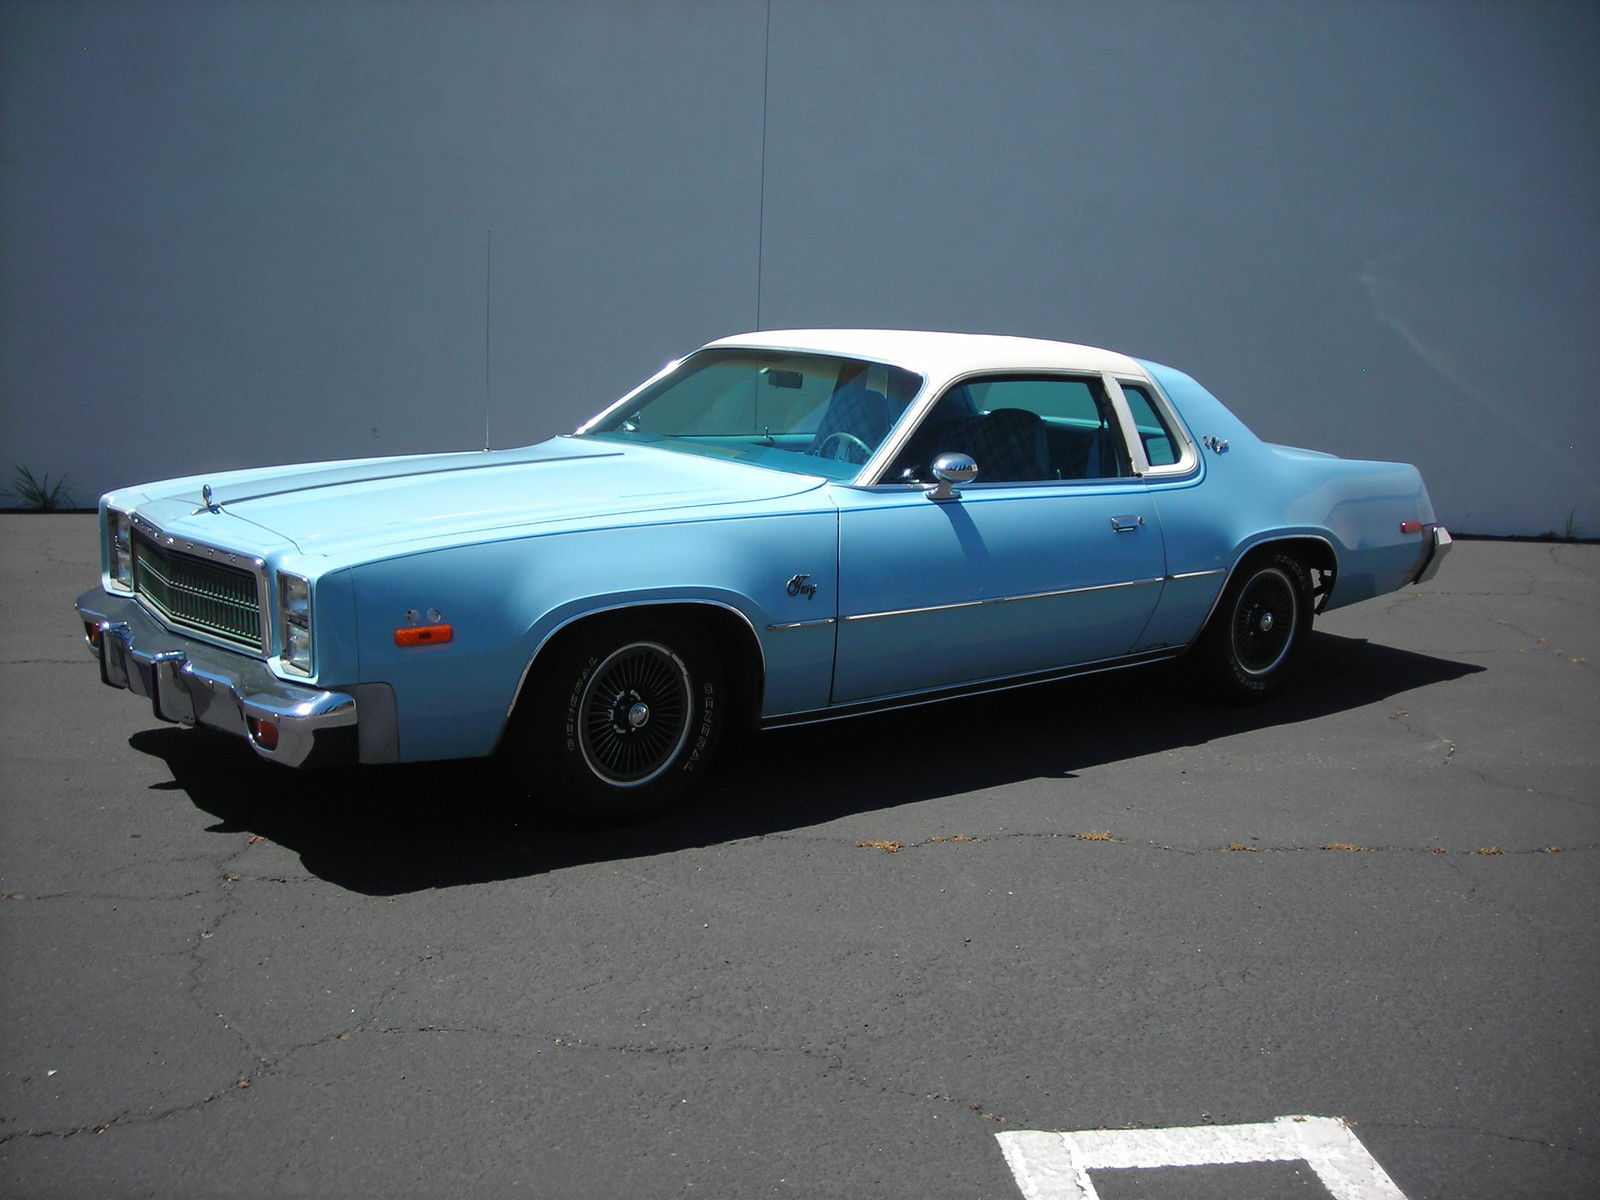 All American Classic Cars 1977 Plymouth Fury Sport 2 Door Hardtop